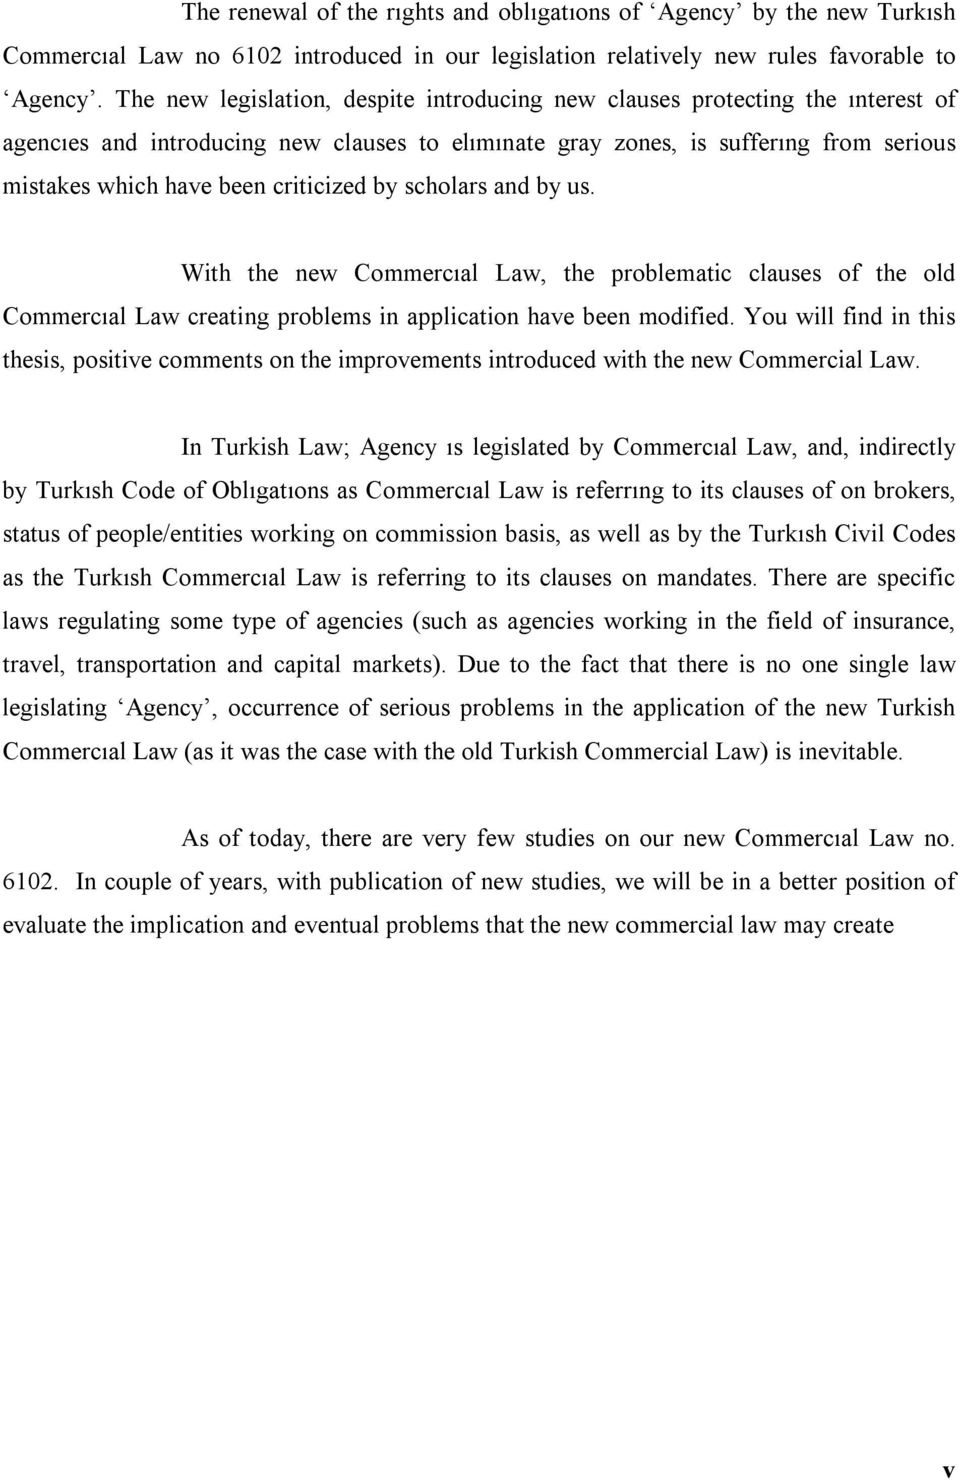 criticized by scholars and by us. With the new Commercıal Law, the problematic clauses of the old Commercıal Law creating problems in application have been modified.